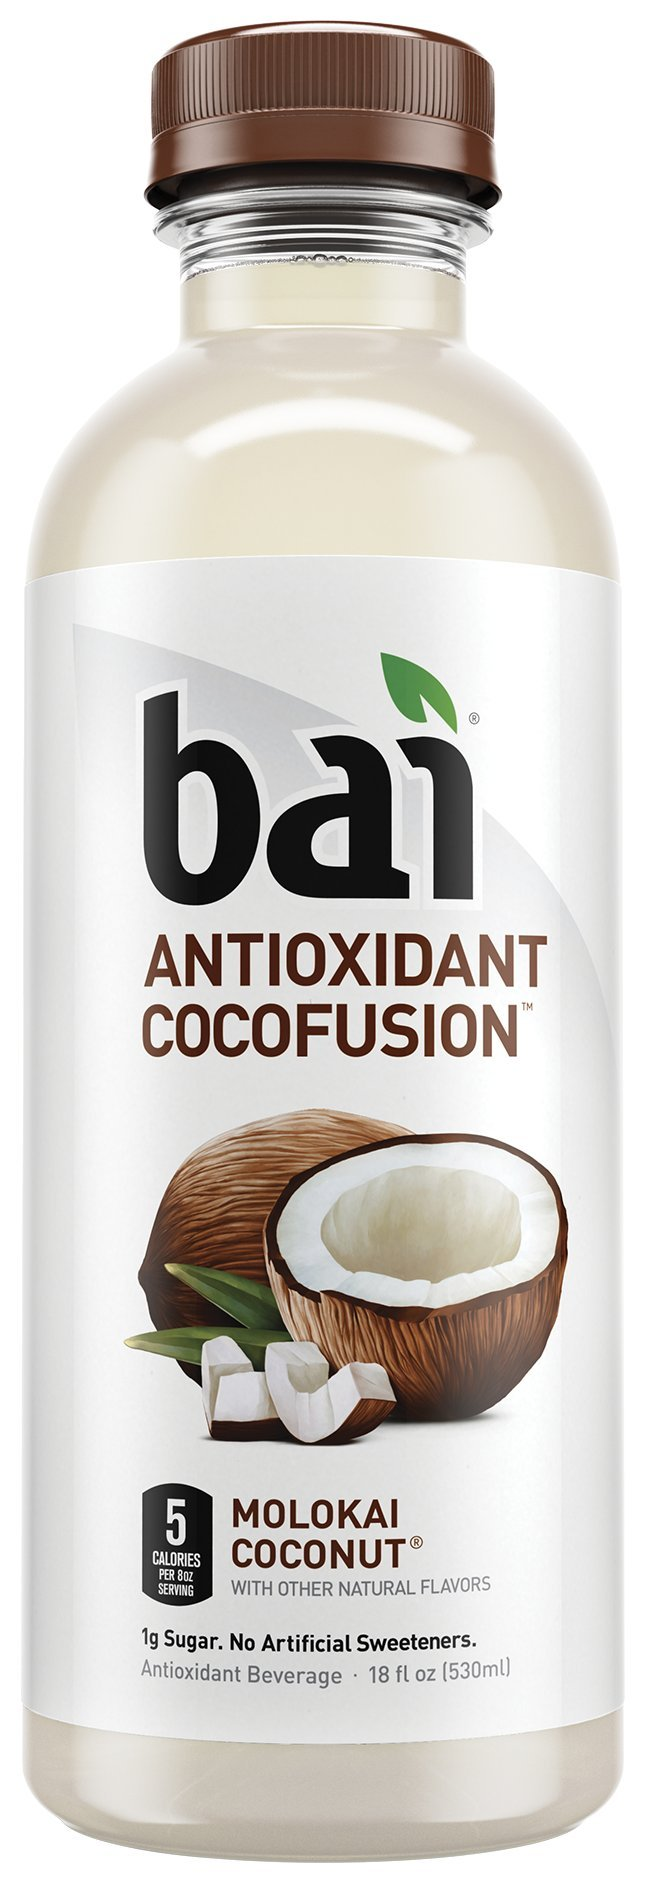 Bai Cocofusions Molokai Coconut, Antioxidant Infused Beverage, 18 Fluid Ounce Bottles, 12 count